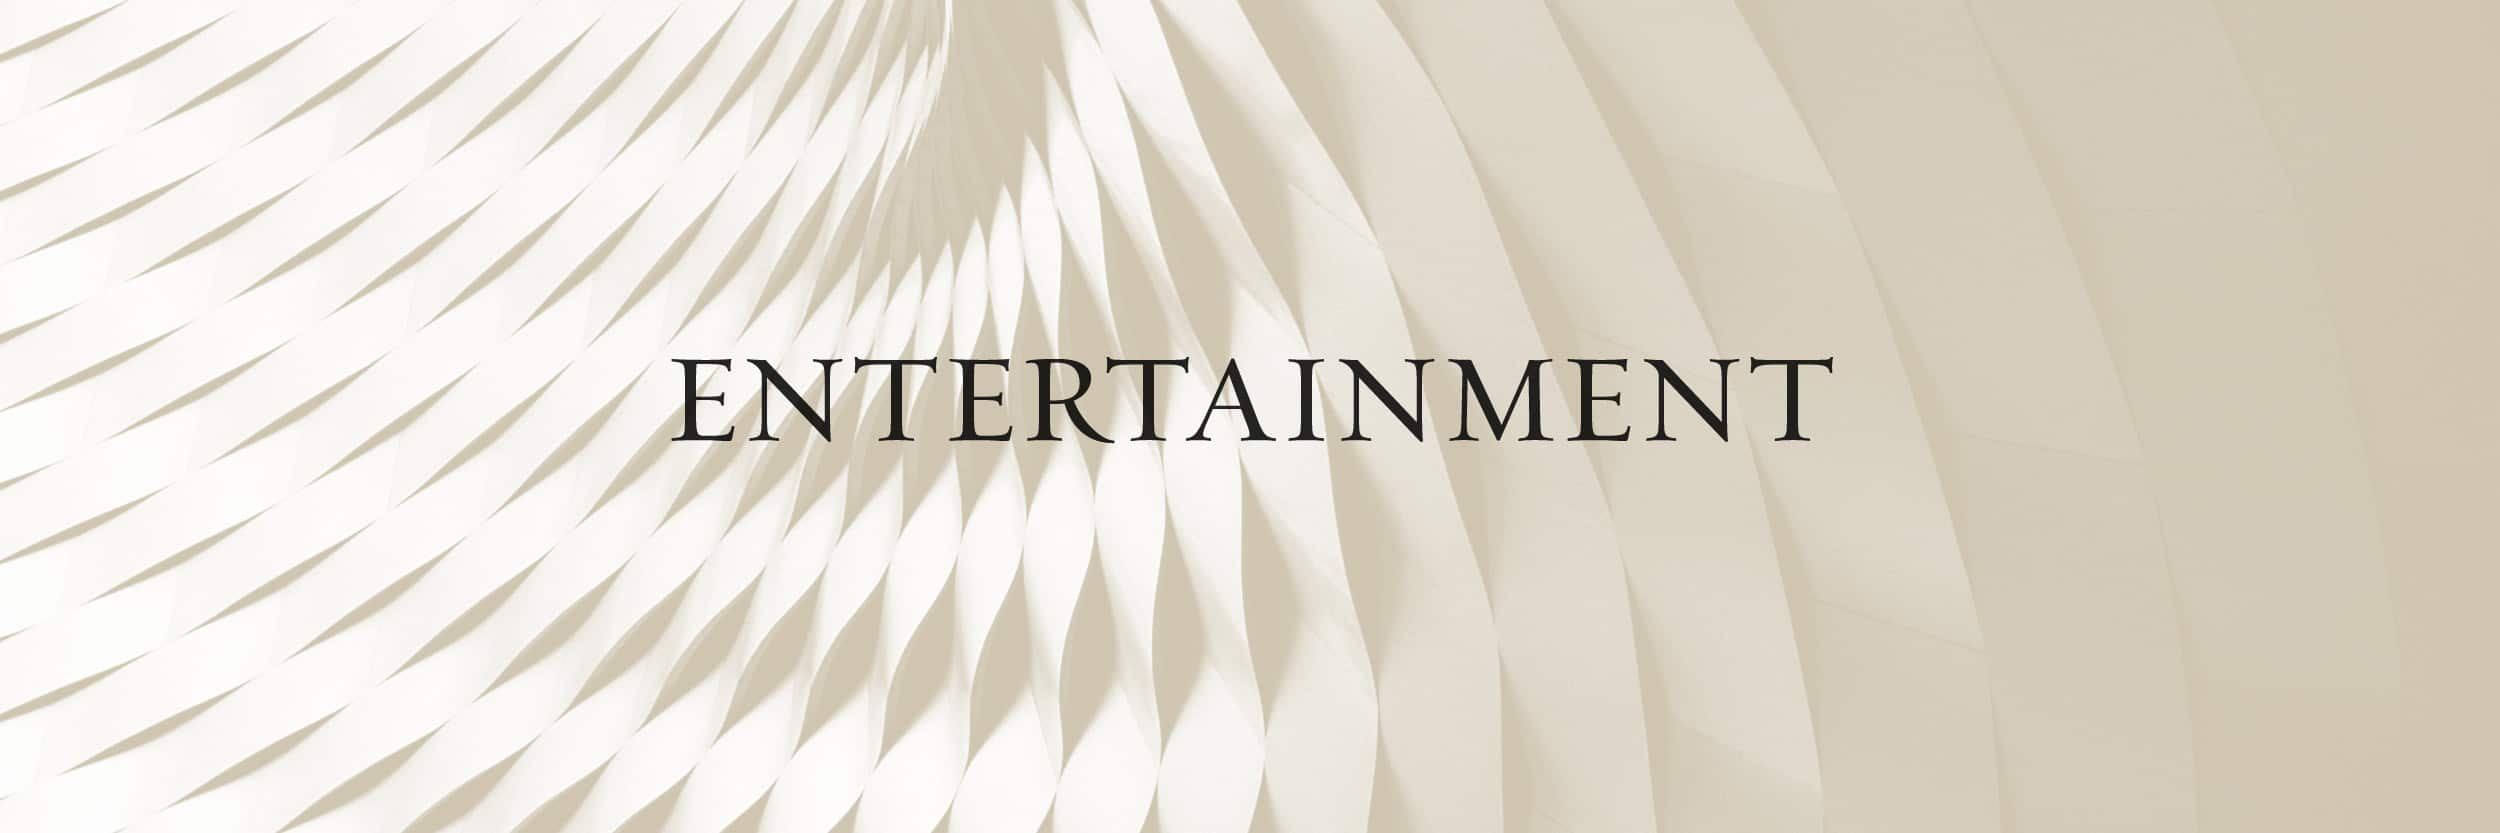 brown and white banner with lettering entertainment, film funding, movies currently in theatres